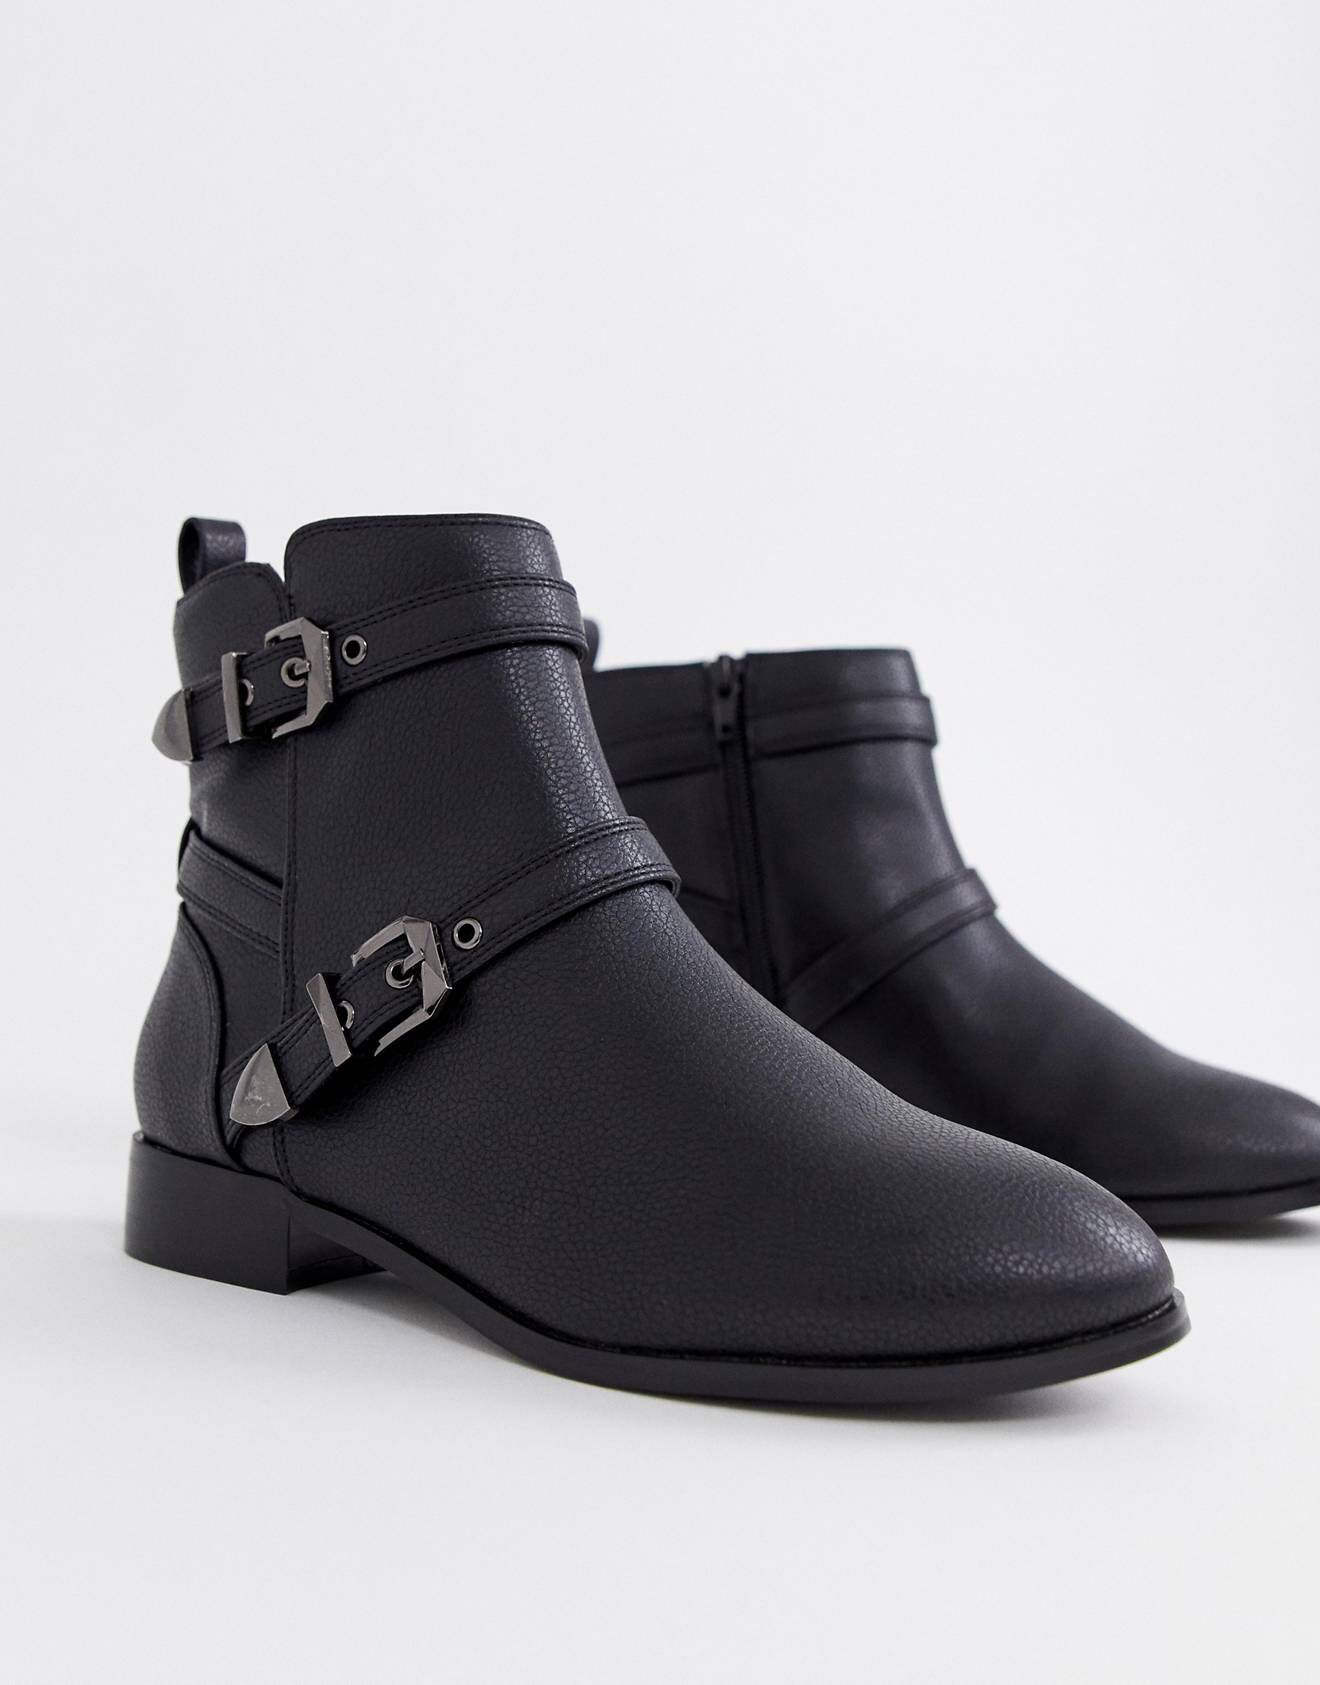 78a2f7f2a63 Faith Wide Fit Wuckle black flat multi buckle ankle boots